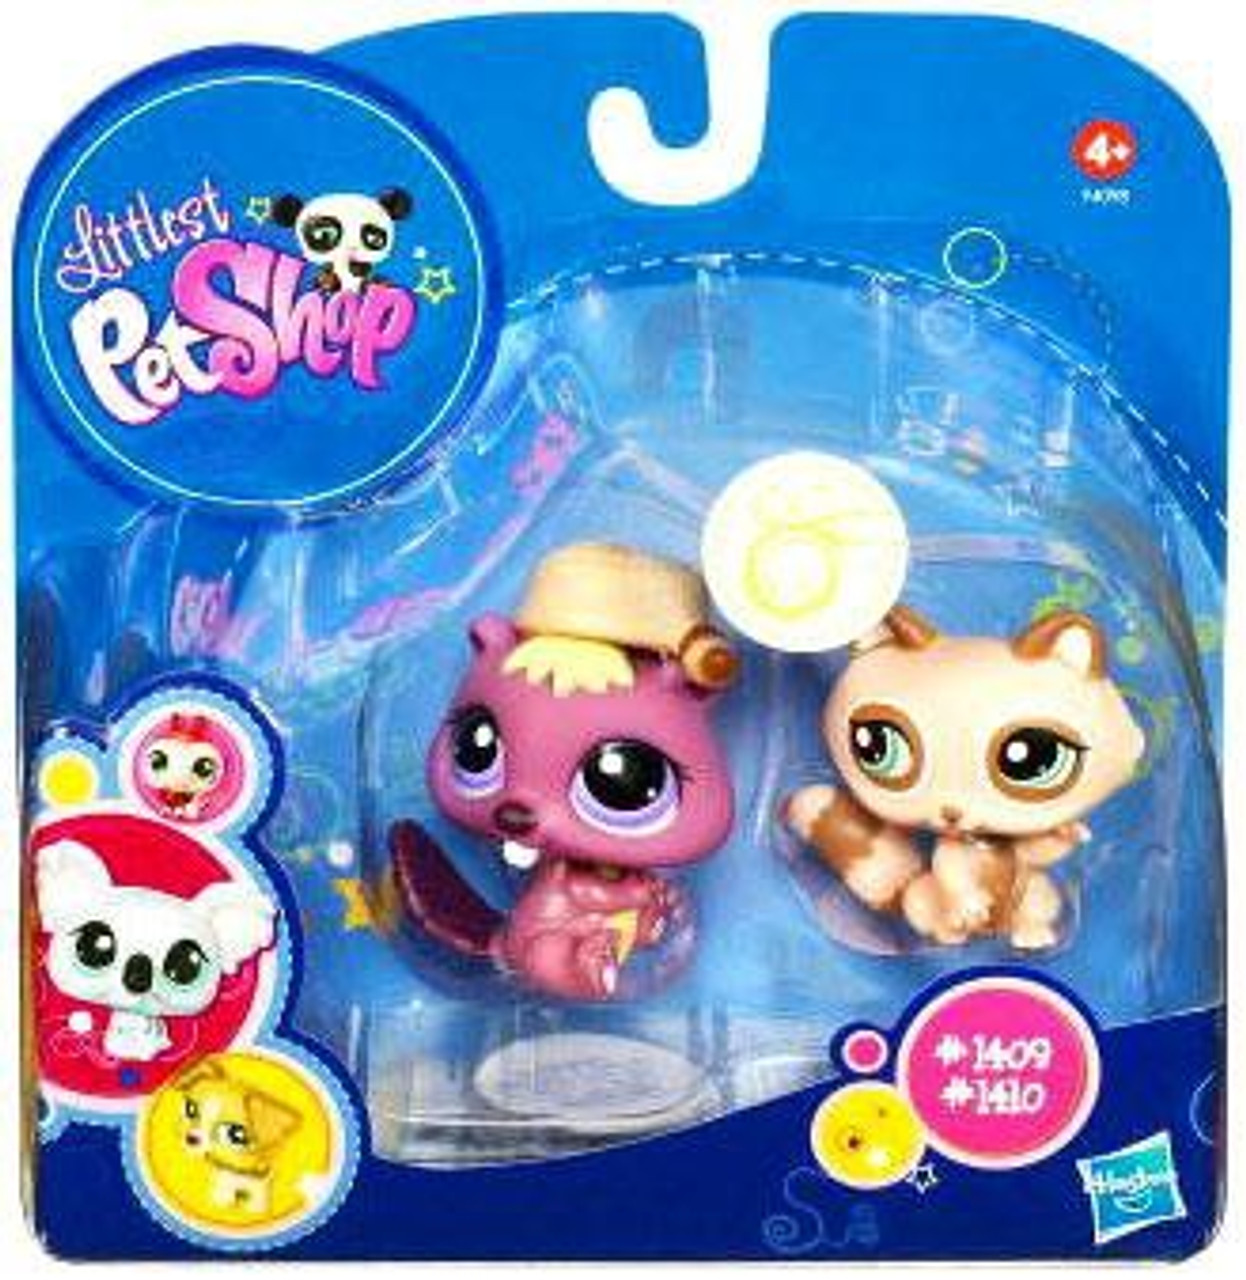 Littlest Pet Shop 2010 Assortment A Series 2 Beaver & Raccoon Figure 2-Pack #1409, 1410